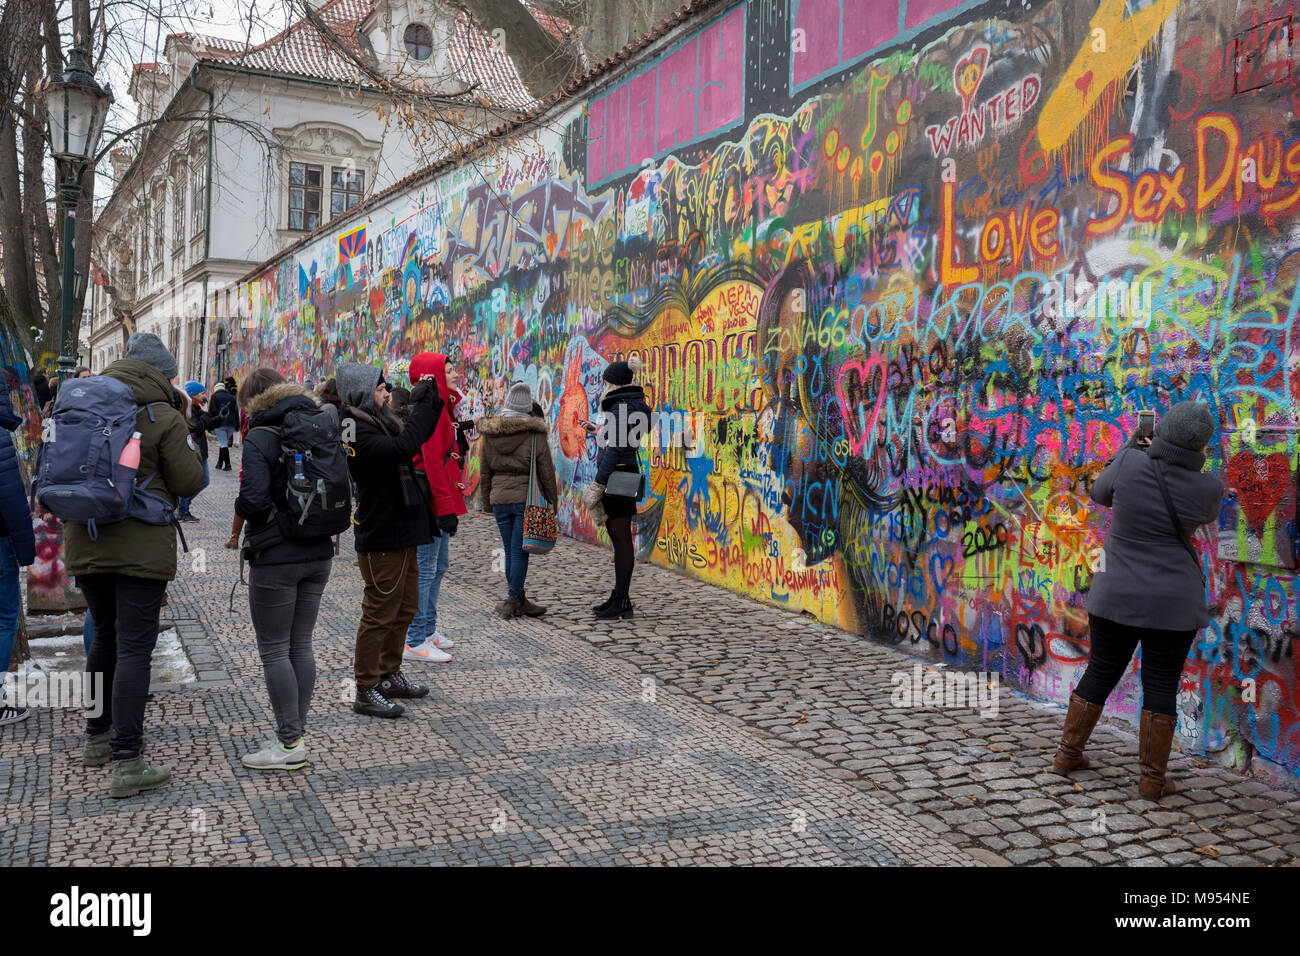 The John Lennon Memorial Wall in Velkoprevorske namesti(Grand Priory Square), Malá Strana, on 18th March, 2018, in Prague, the Czech Republic. The Lennon Wall or John Lennon Wall is a wall in Prague, Czech Republic. Once a normal wall, since the 1980s it has been filled with John Lennon-inspired graffiti and pieces of lyrics from Beatles' songs. In 1988, the wall was a source of irritation for the communist regime of Gustáv Husák. Young Czechs would write grievances on the wall and in a report of the time this led to a clash between hundreds of students and security police on the nearby Charle - Stock Image